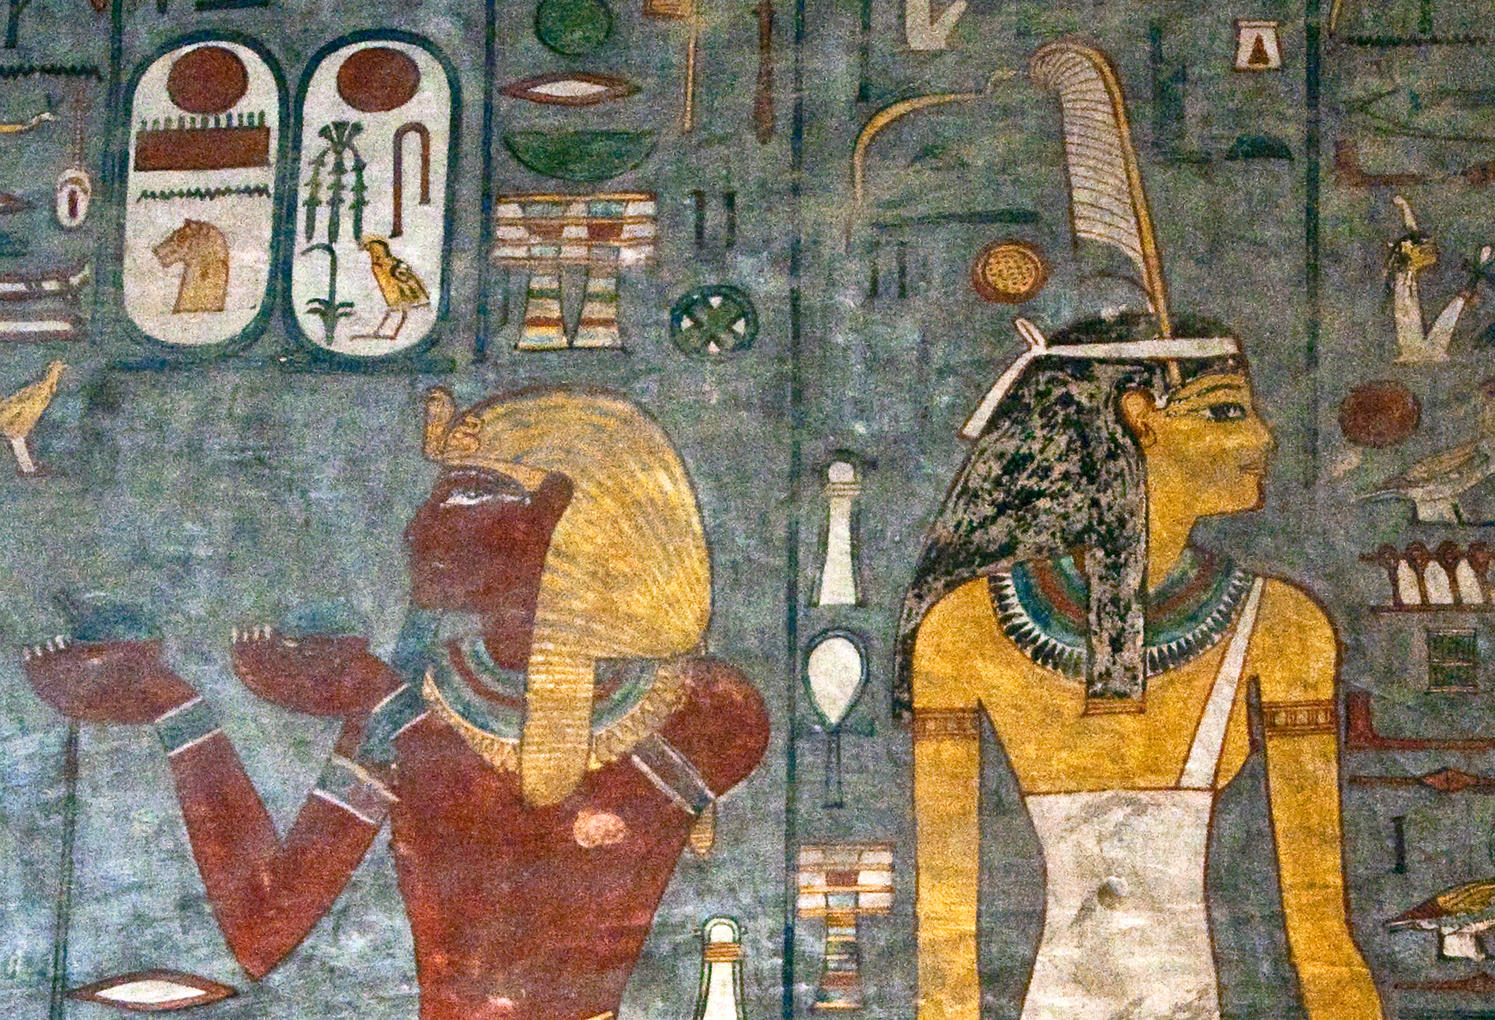 Art on the tomb of Ramses I in Luxor, Egypt.Arco Images GmbH/Alamy Stock Photo.